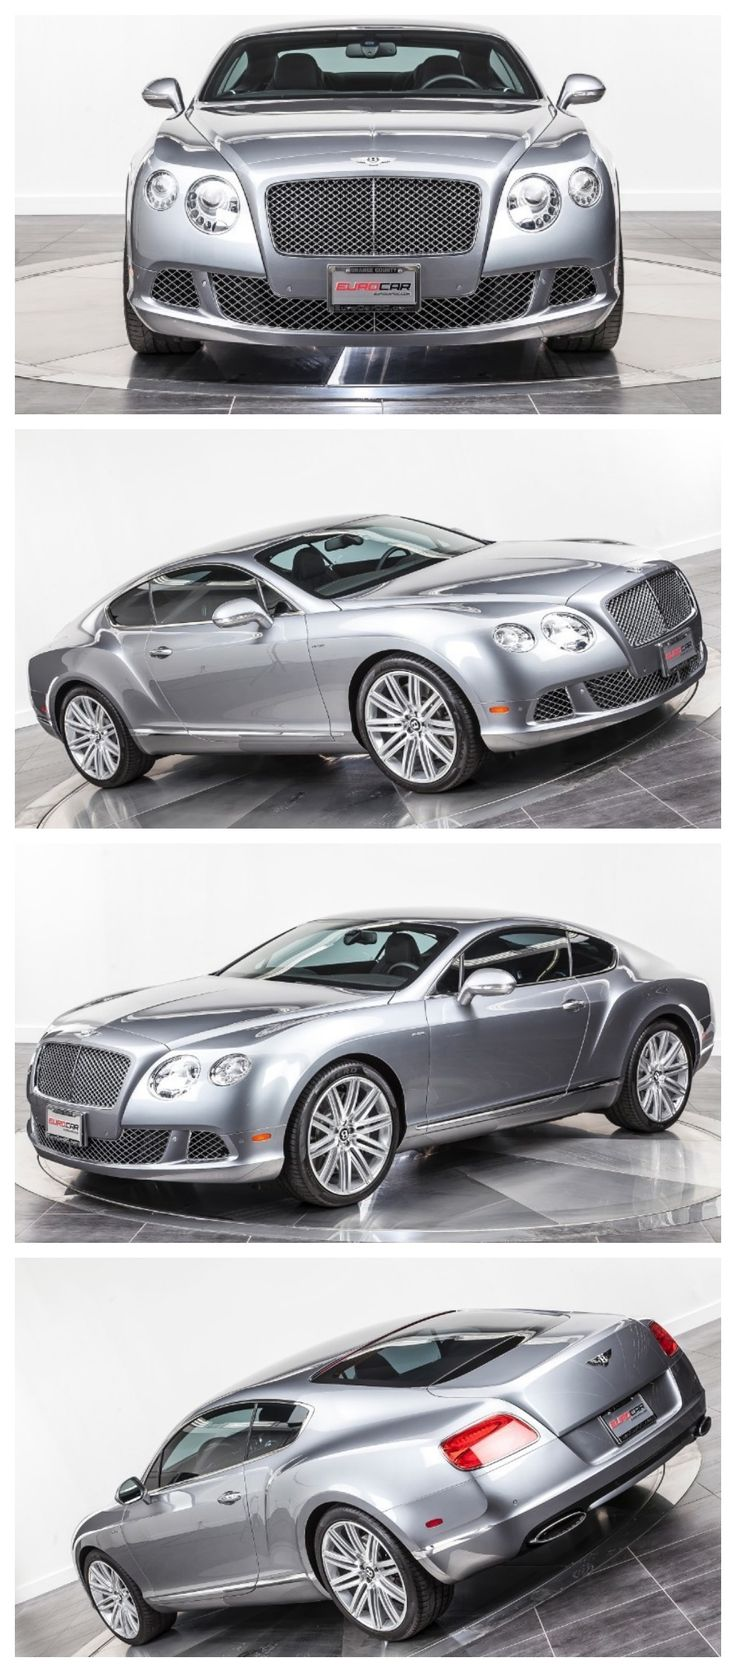 Bentley Continental GT Speed Edition. Under the hood is a 6.0 liter Twin-Turbo charged W12 engine producing 626HP and 695 ft-lb of torque! Using that power, the GT Speed will launch to 60 mph in less than 3.9 secs and all the way to an astonishing top speed of 206mph! #TurboTuesday